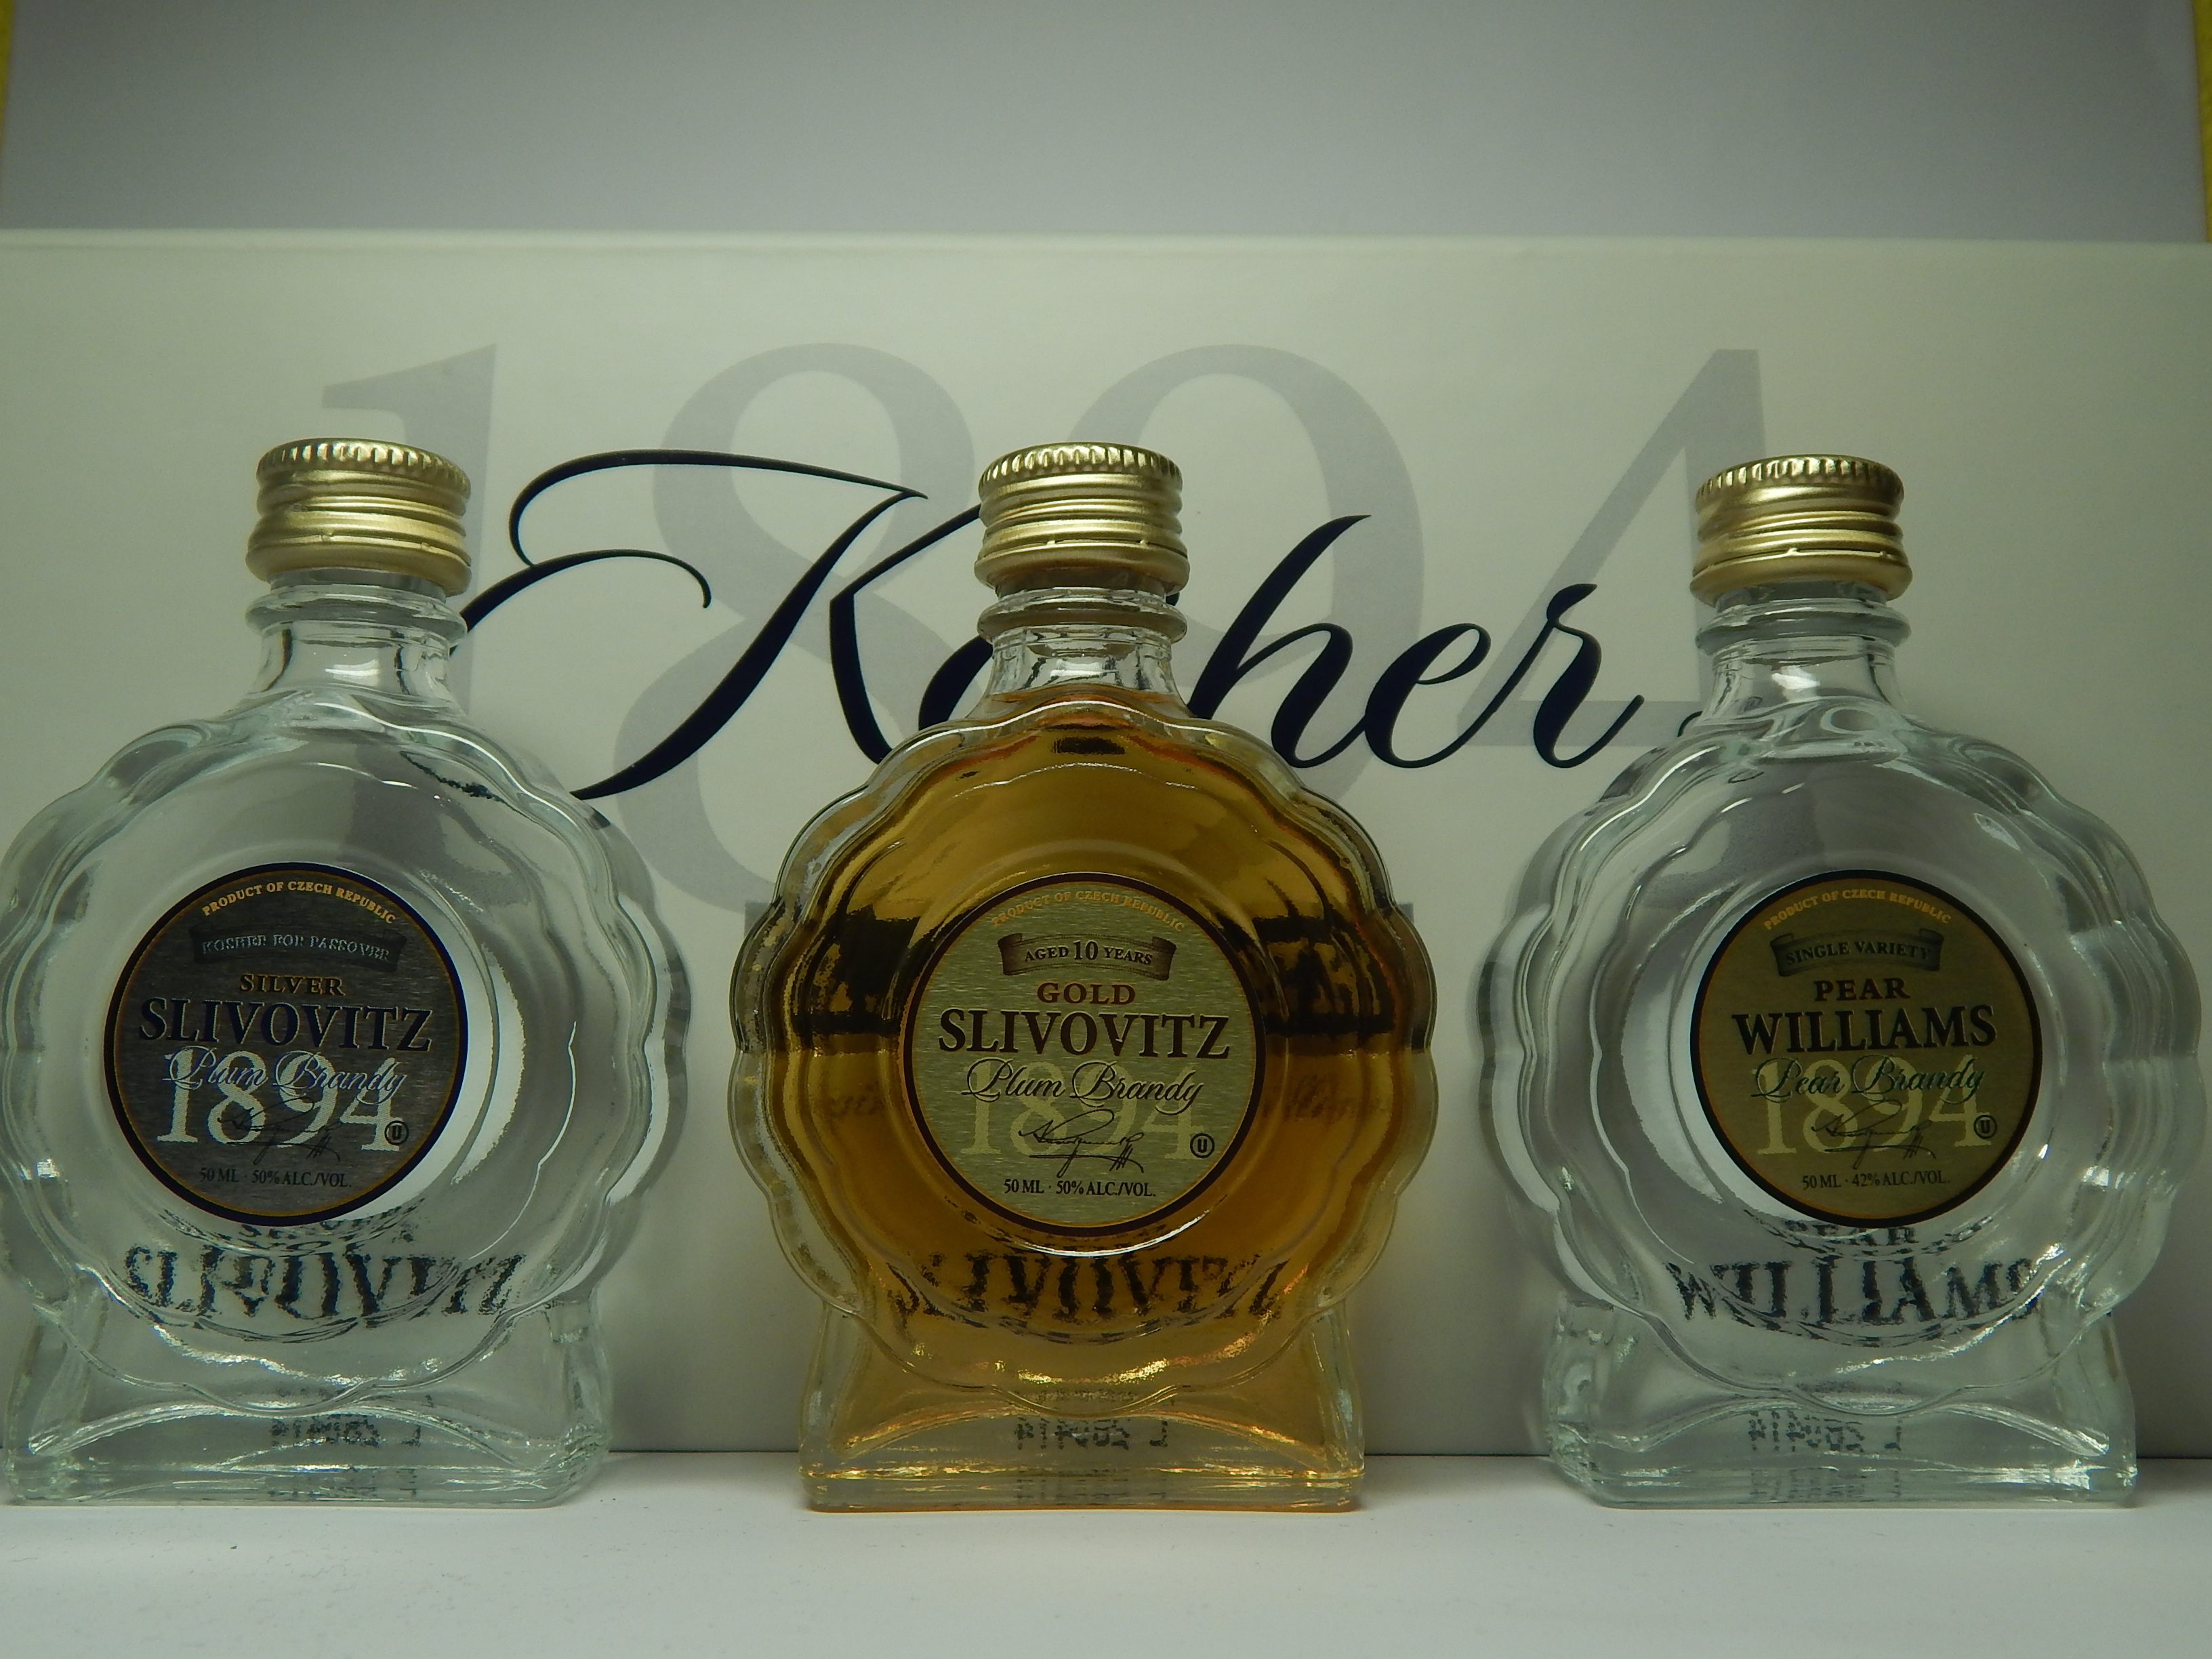 R.JELINEK 1894 Silver Slivovitz - Gold Slivovitz - Pear Williams